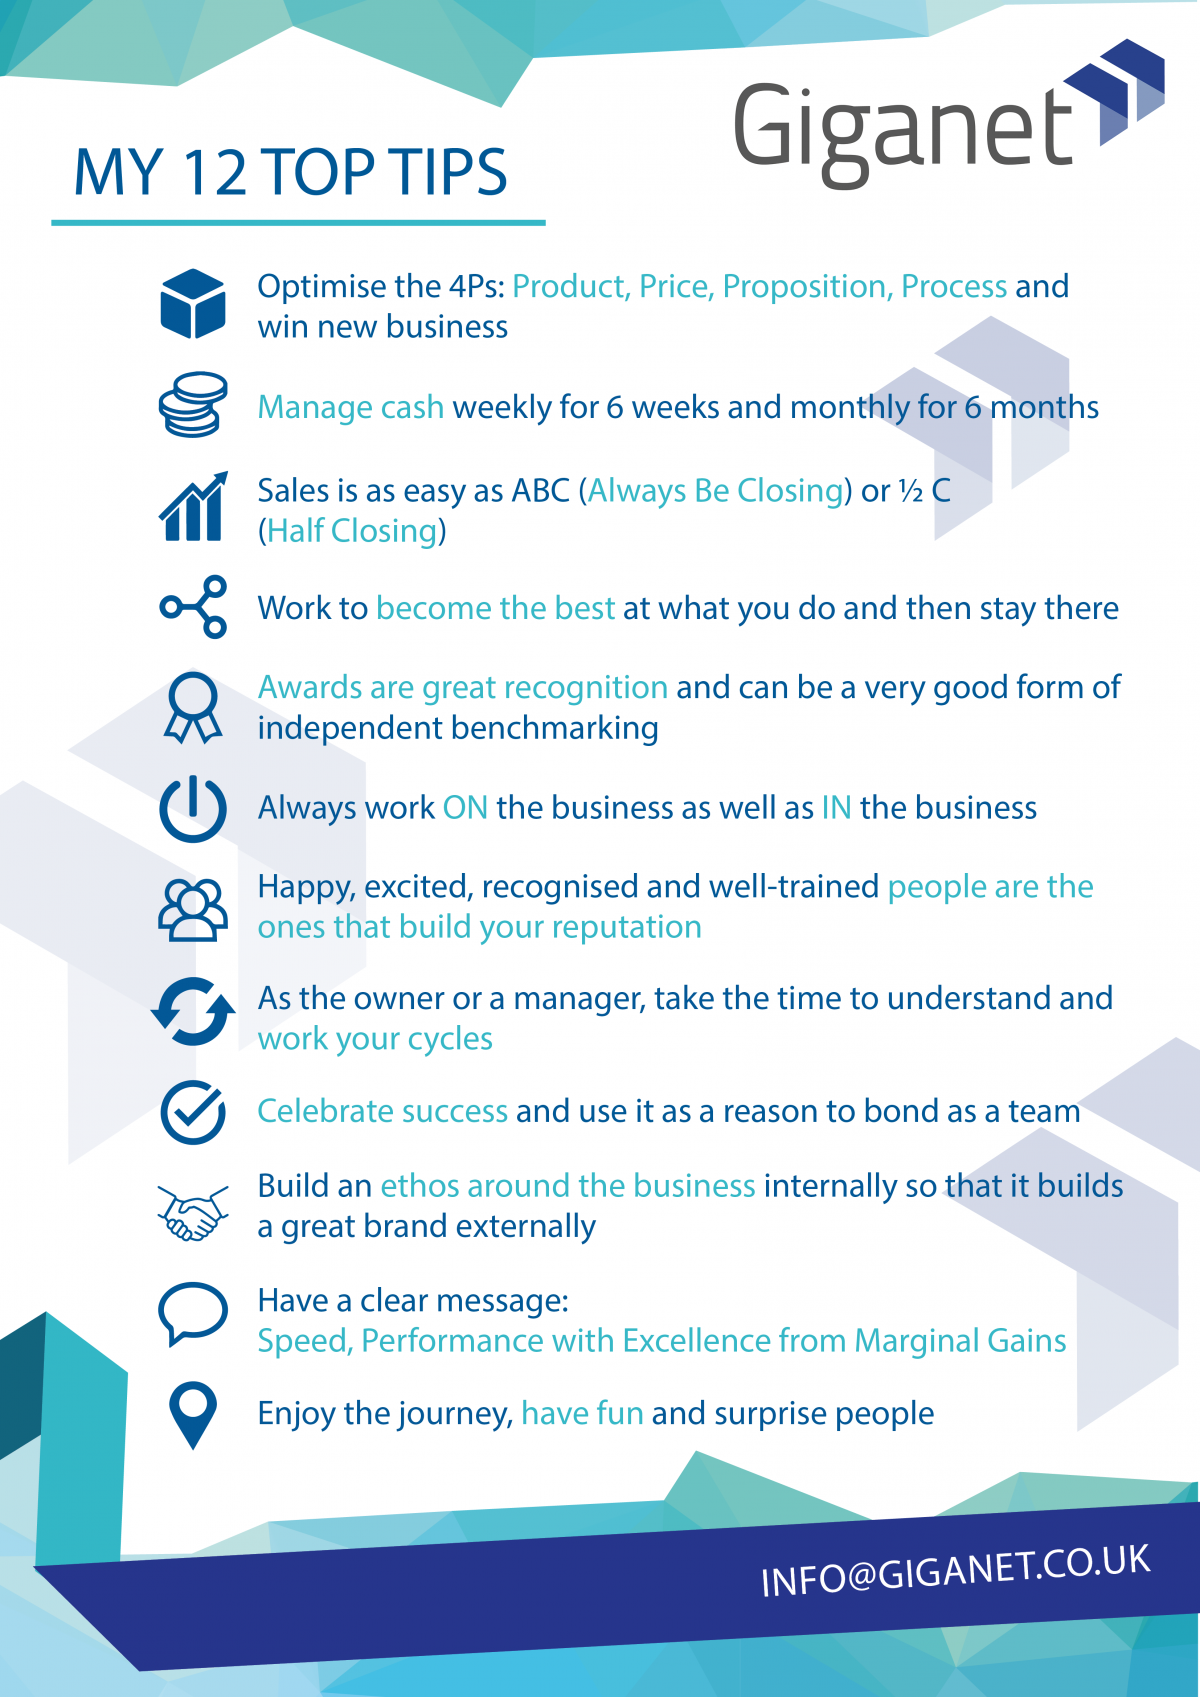 Andrew's 12 top tips to succeed in business.